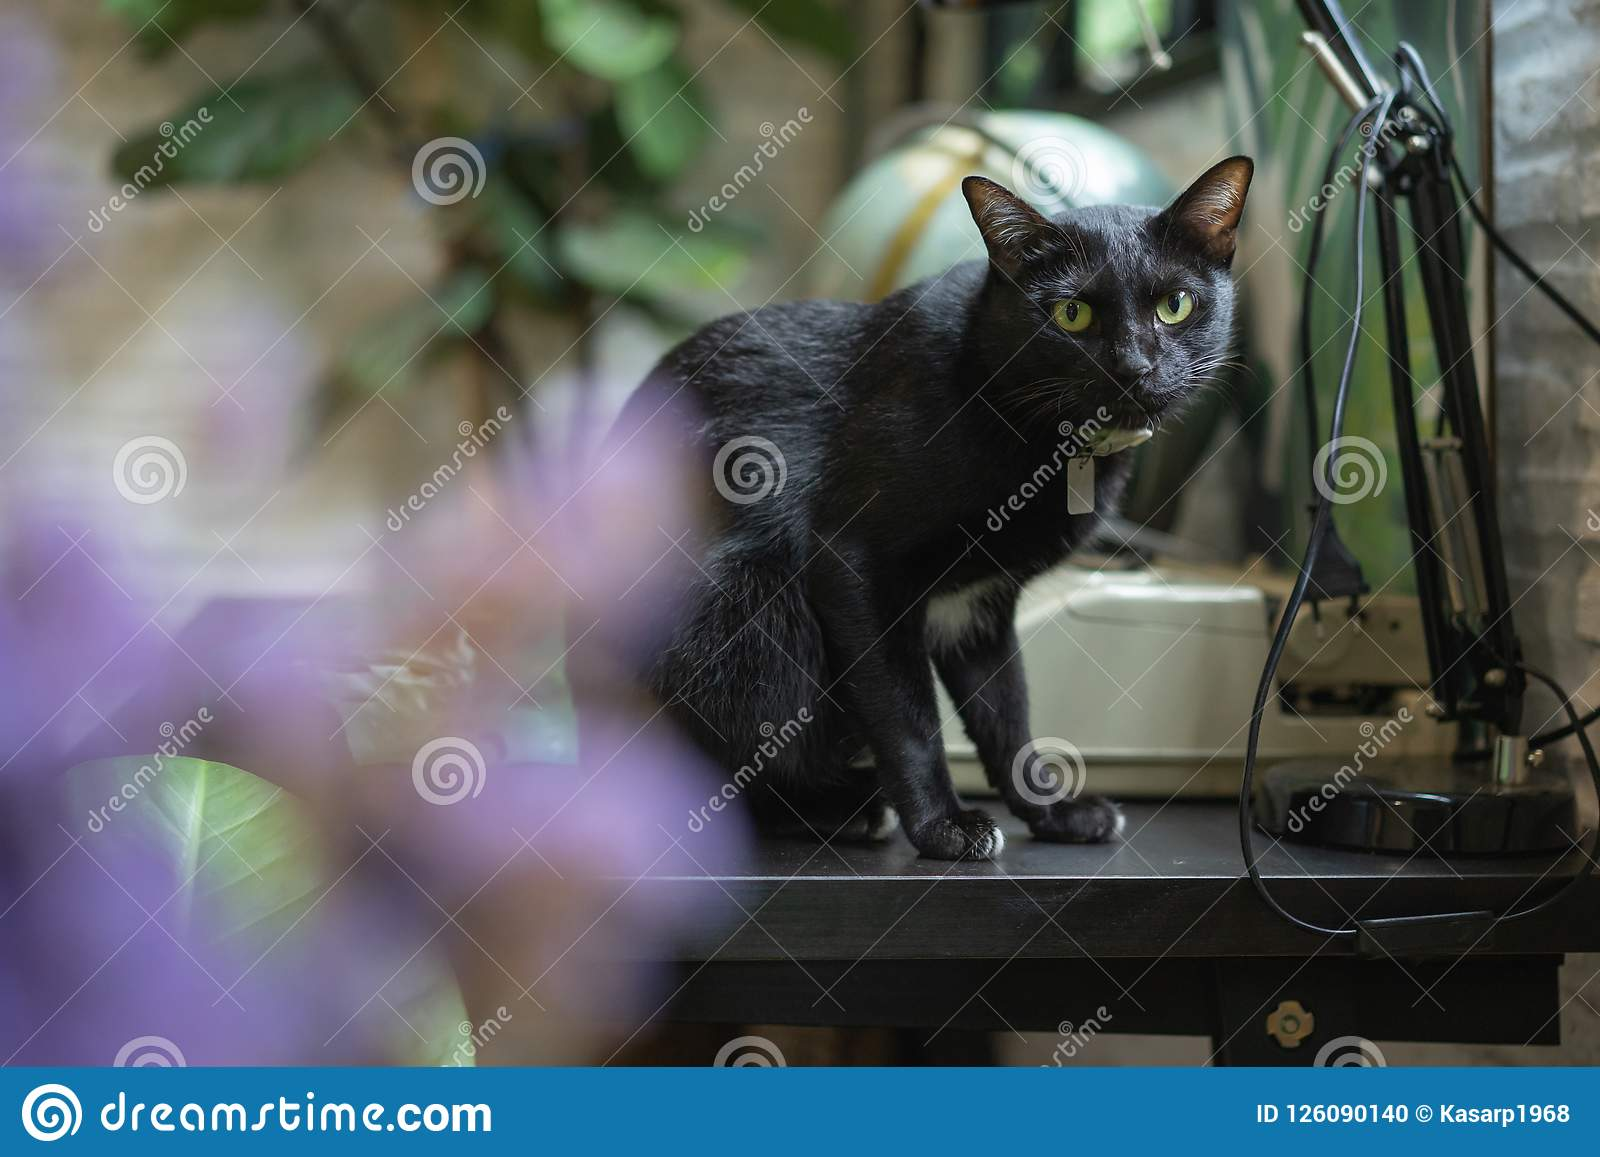 Black cat on wooden table